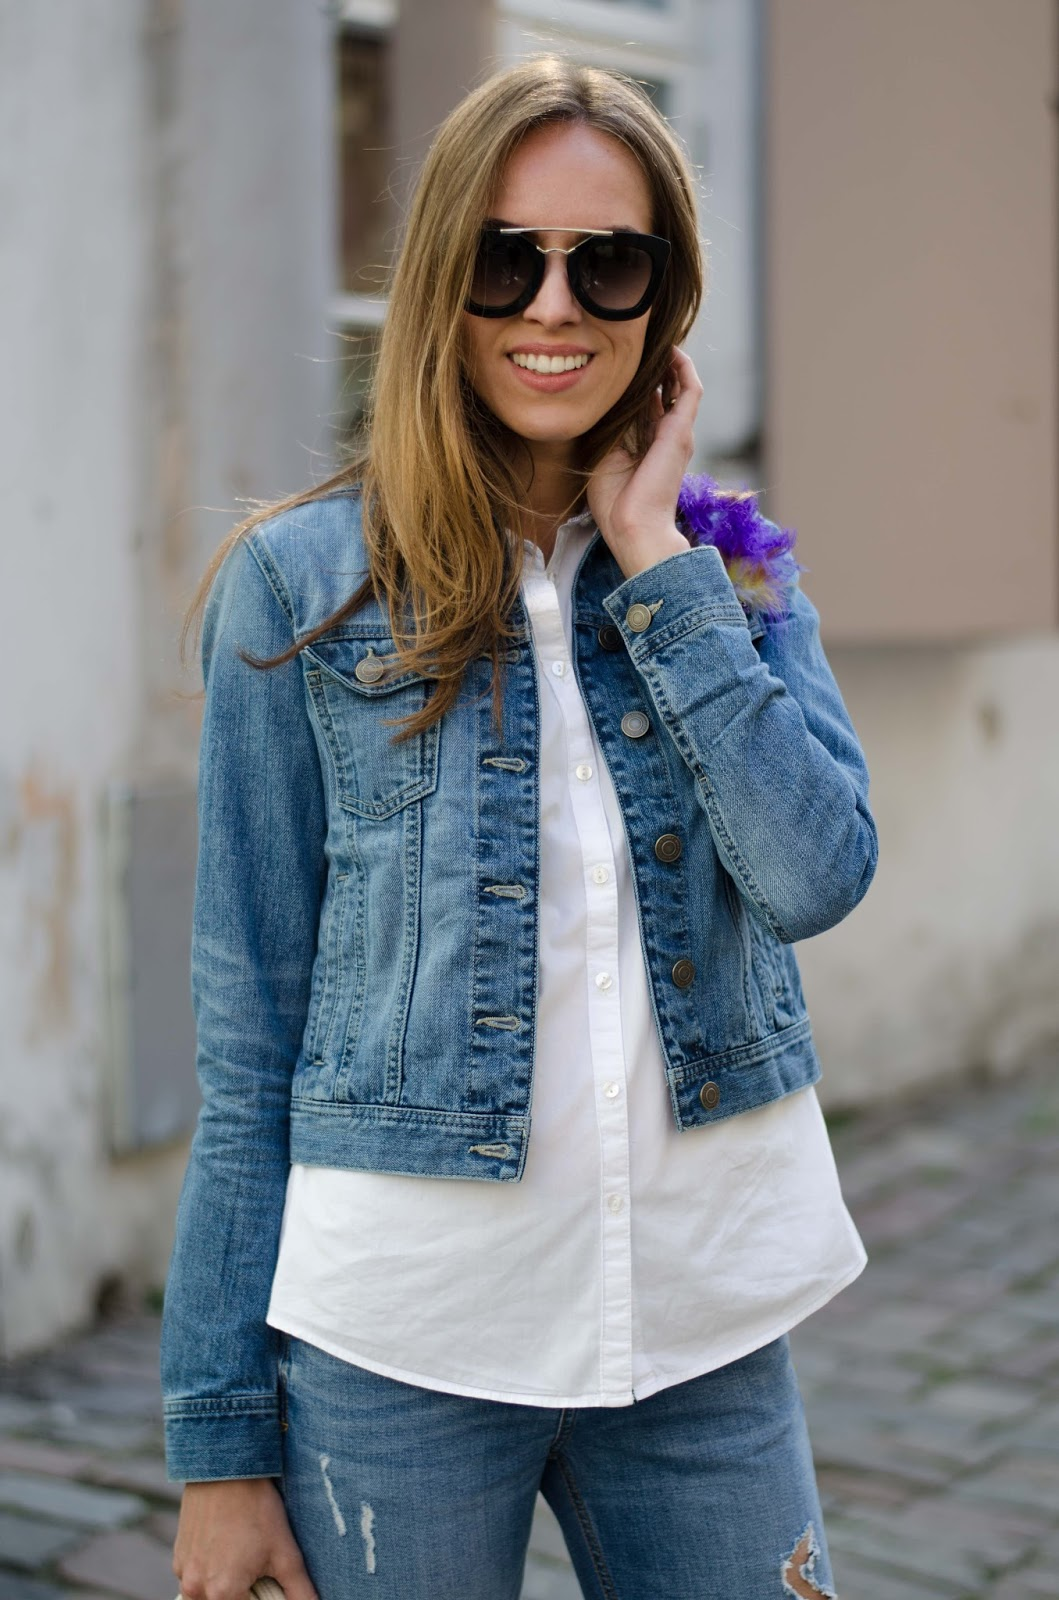 kristjaana mere denim jacket white shirt jeans spring outfit